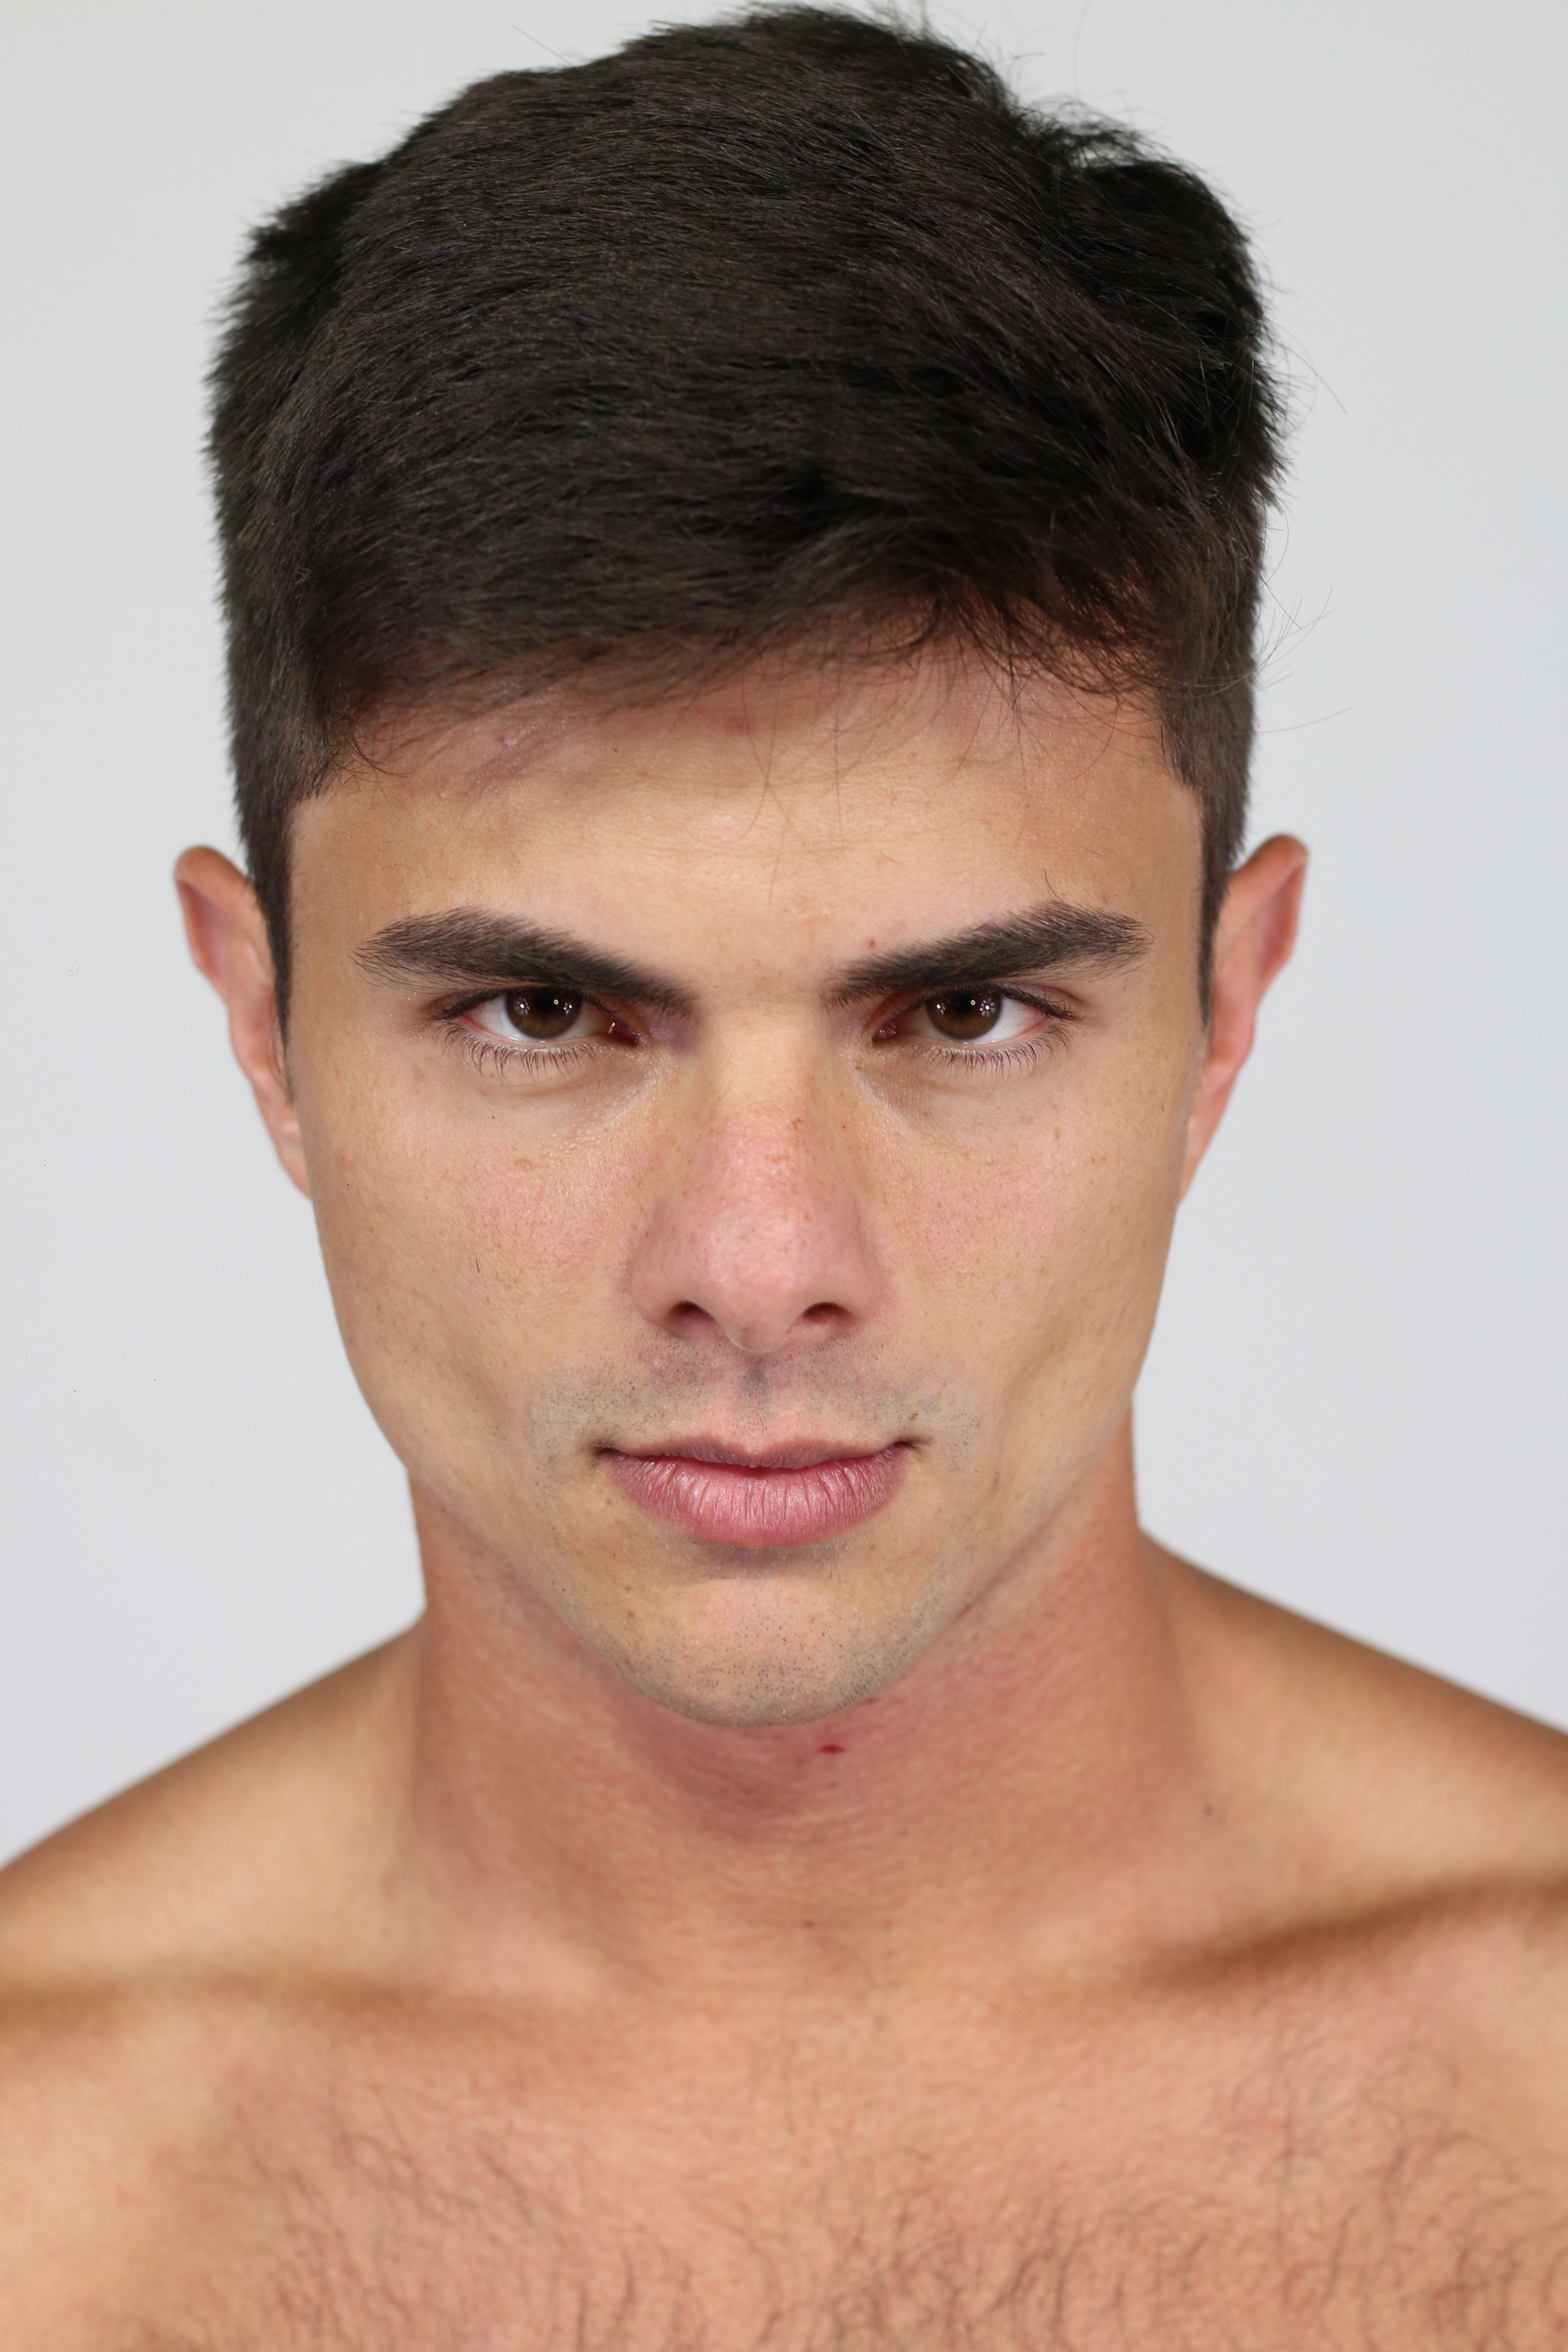 Augusto Paes